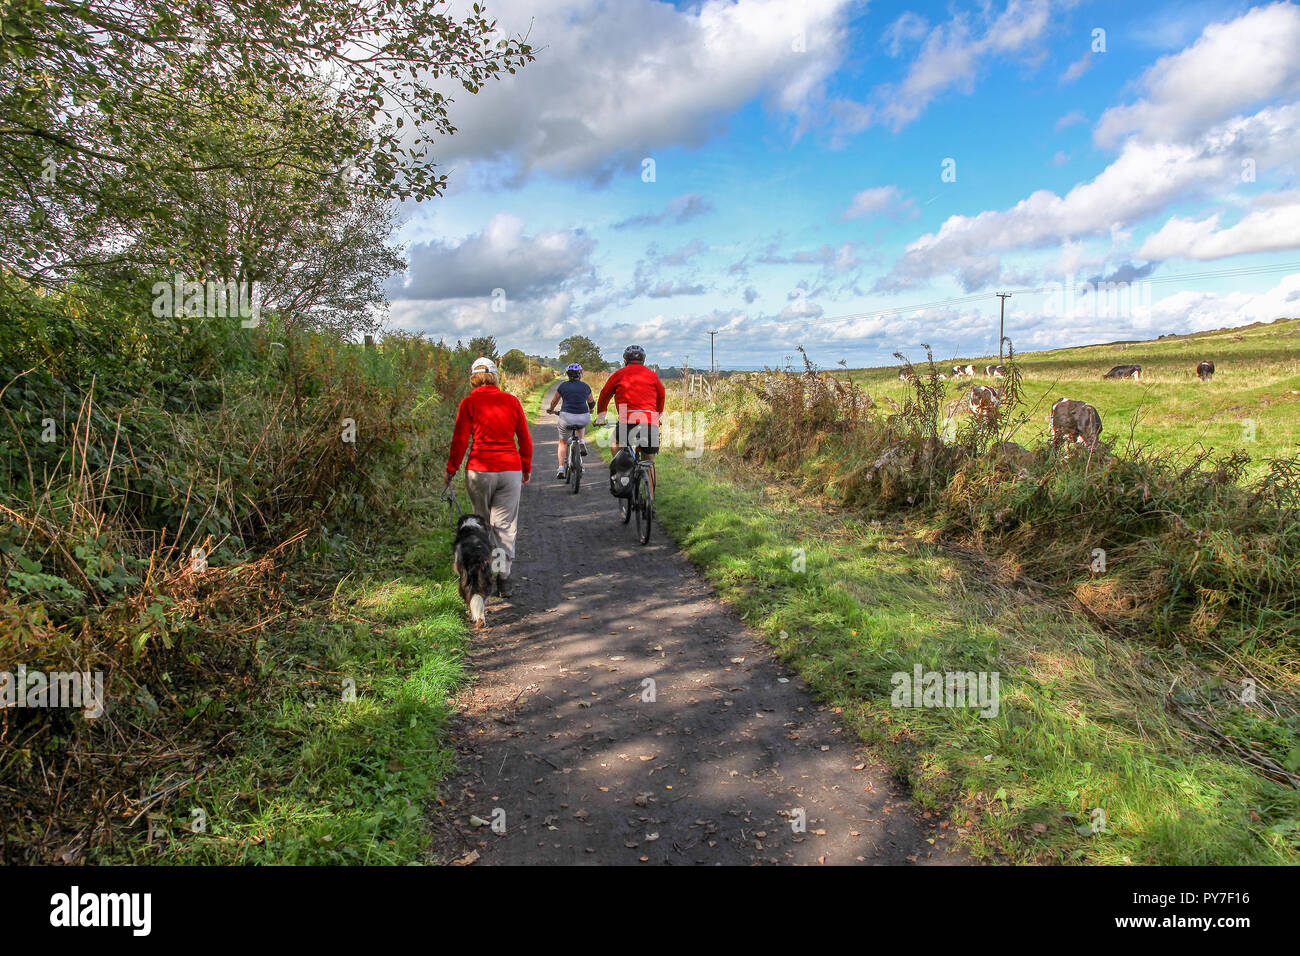 Cyclists and walkers on the High Peak Trail, Derbyshire, England, UK, Stock Photo